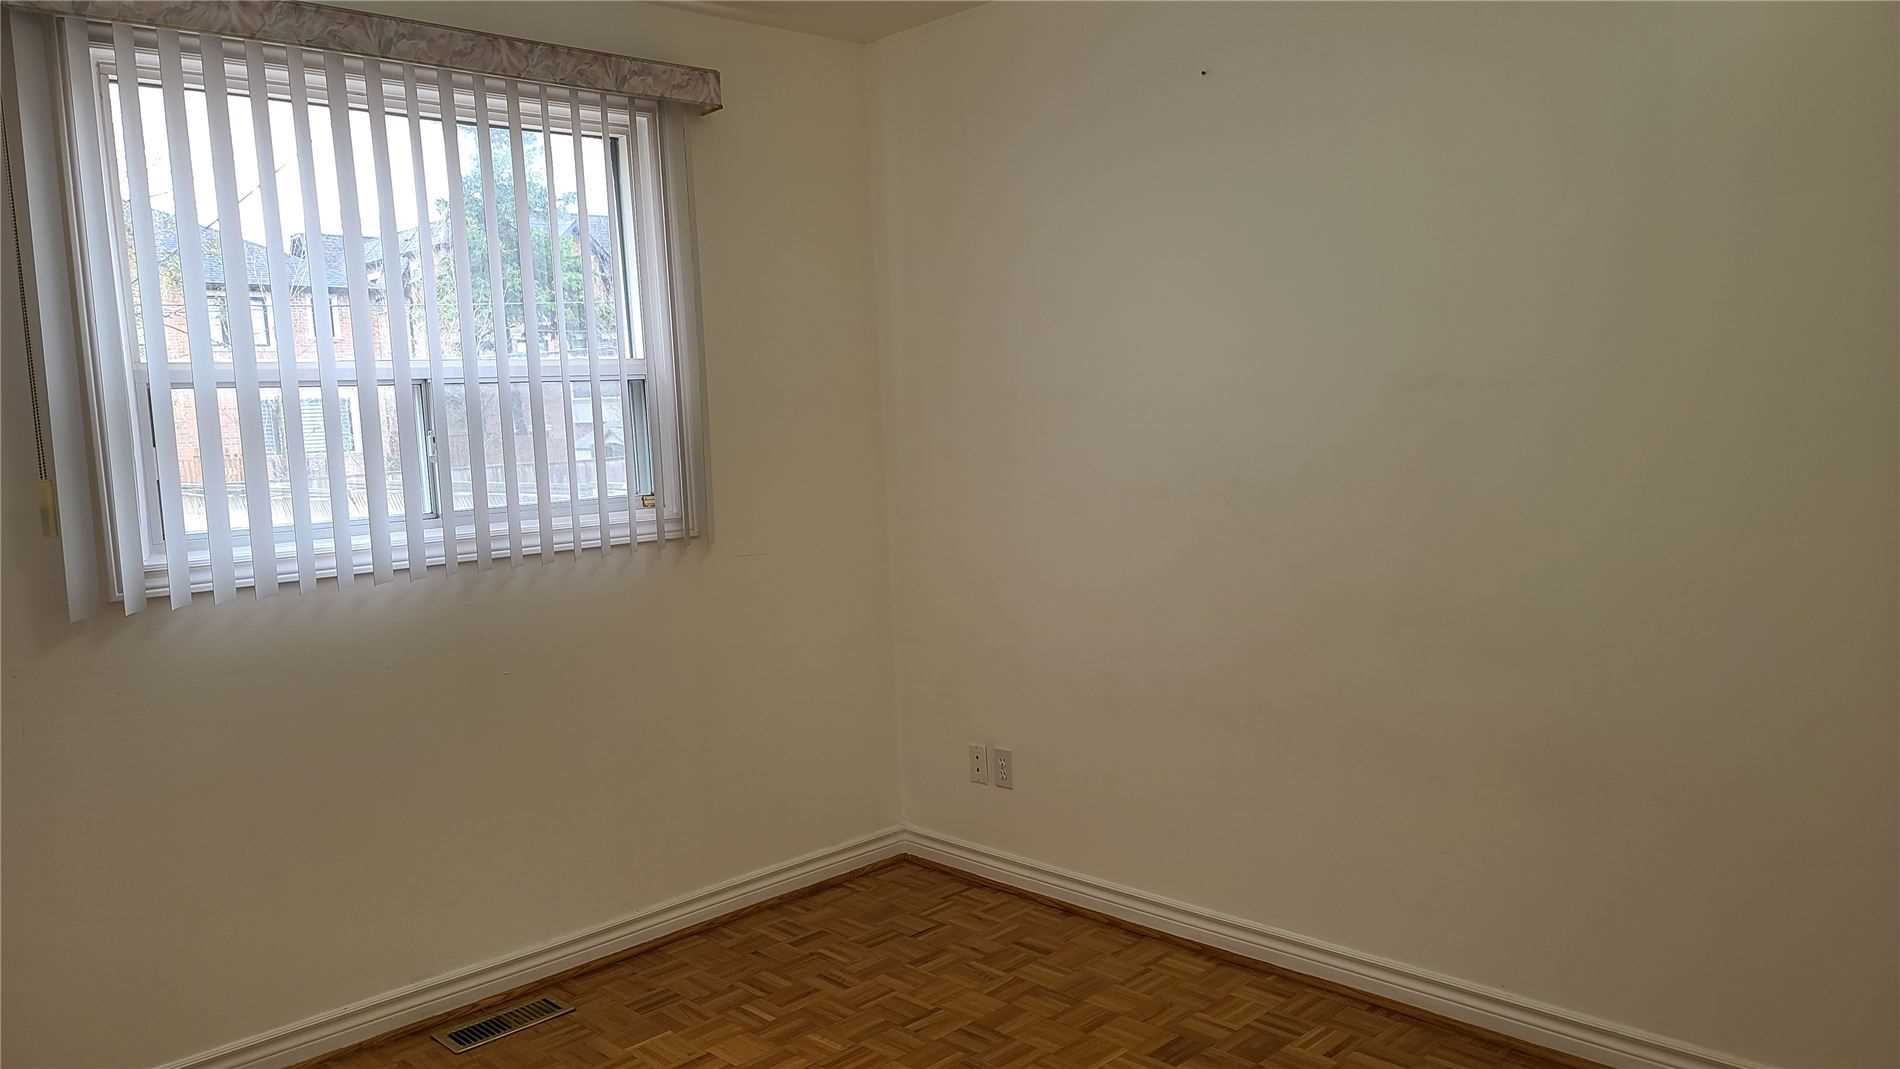 Image 12 of 13 showing inside of 2 Bedroom Detached 2-Storey for Lease at 217 Finch Ave W, Toronto M2R1M2